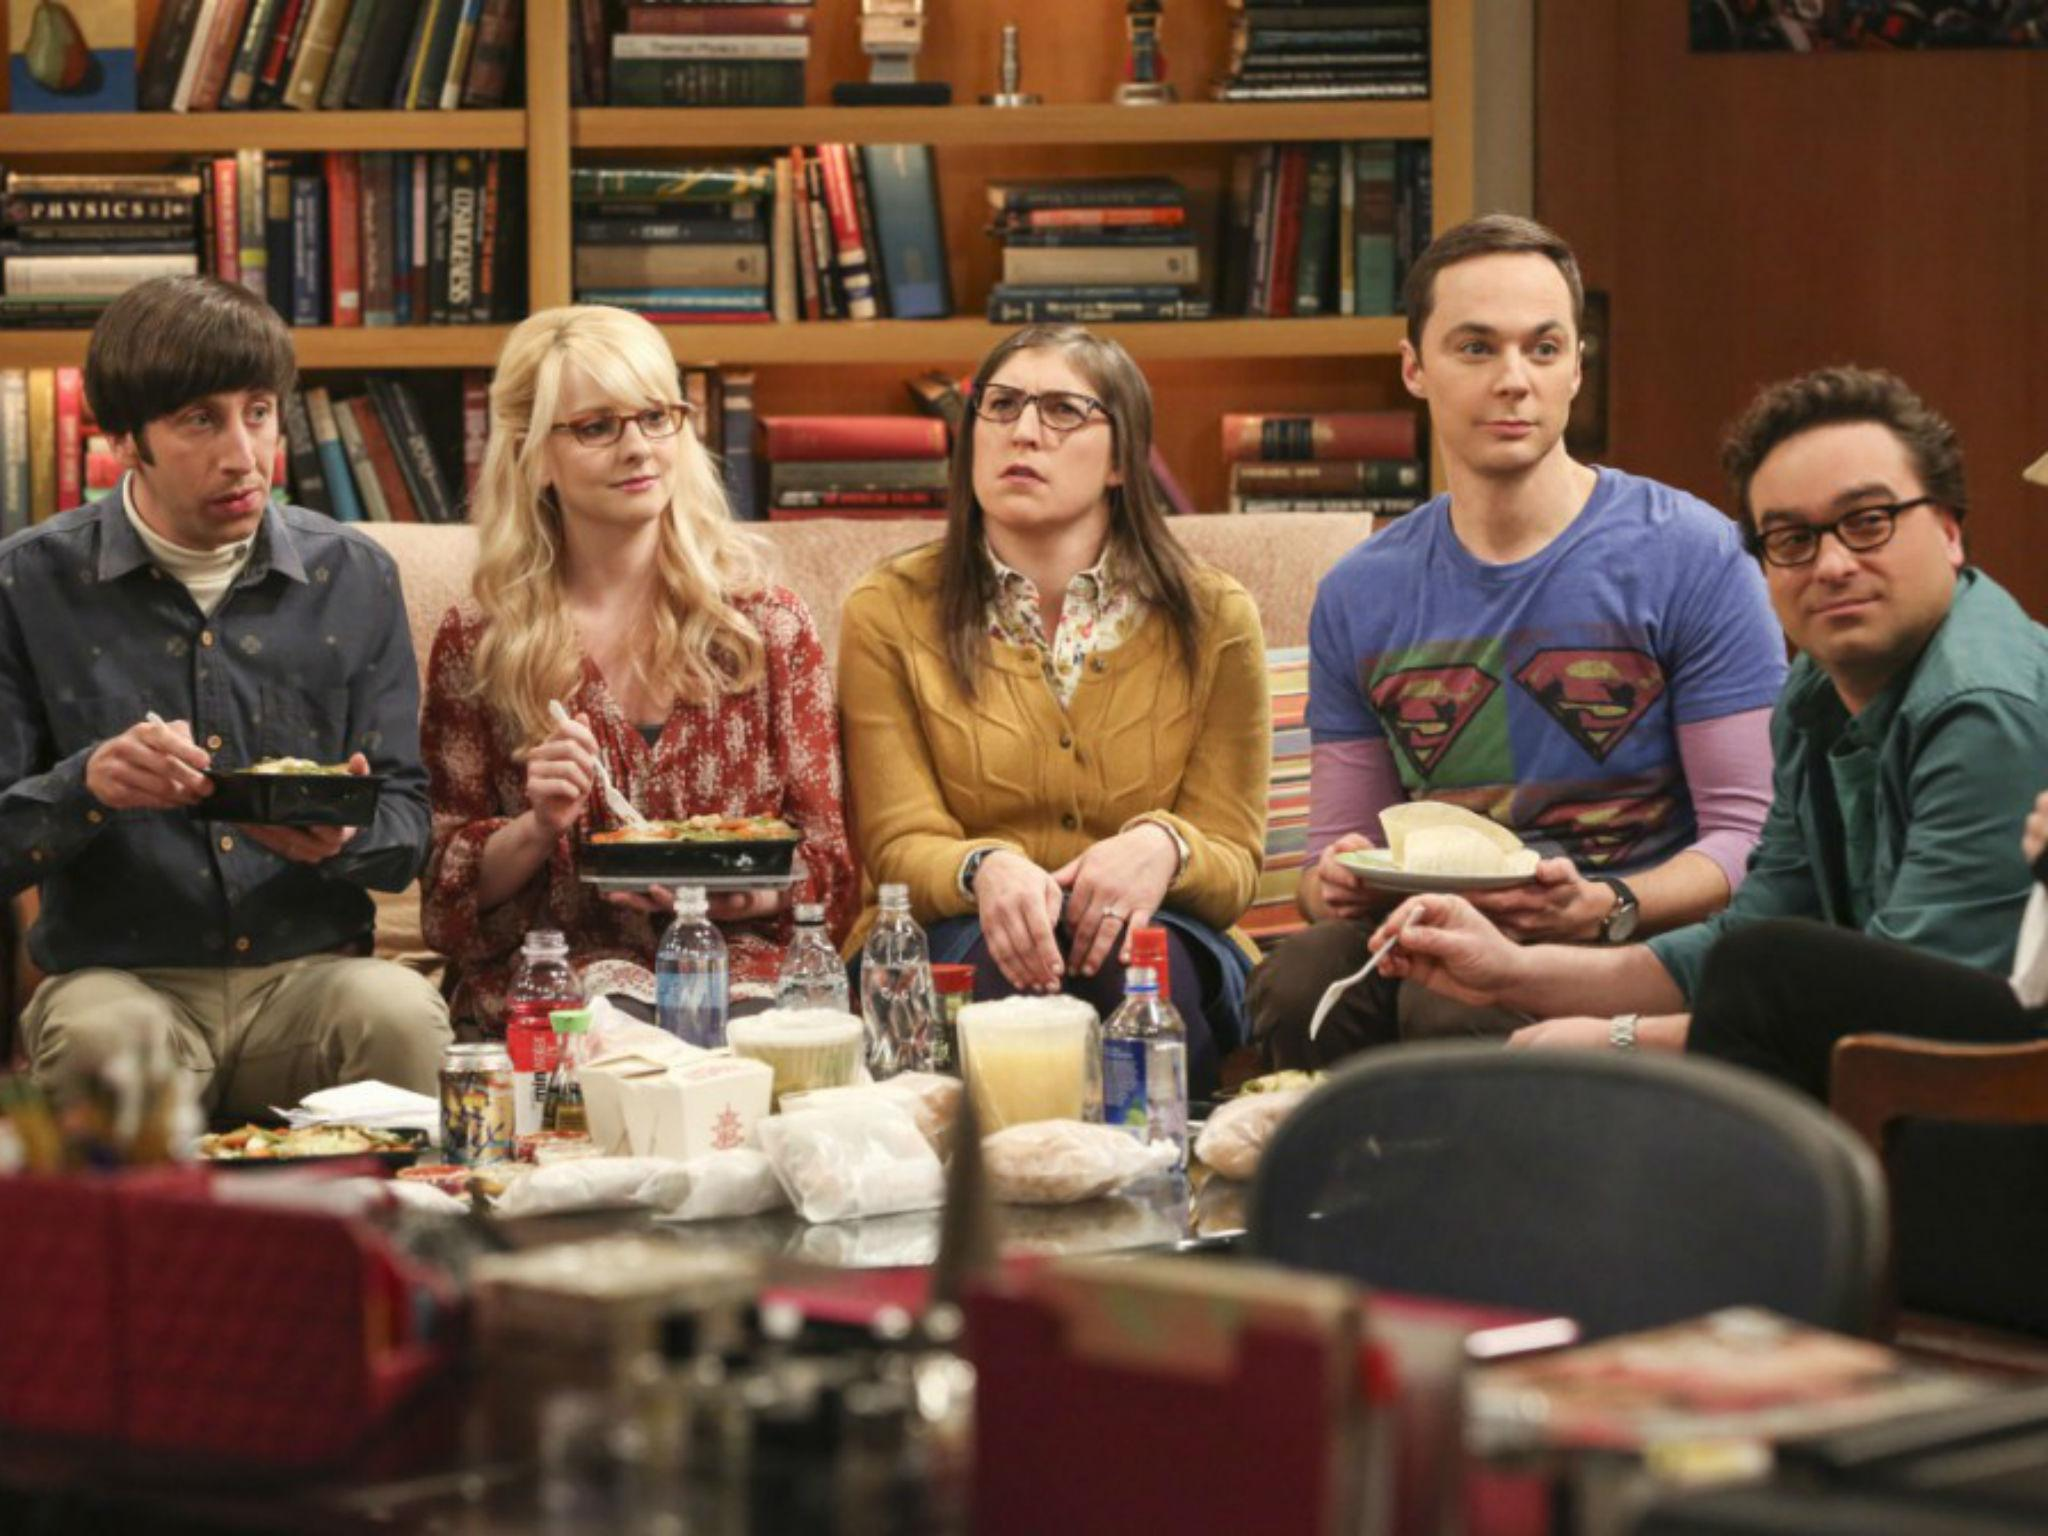 Strict Rules The Big Bang Theory Cast Have to Follow